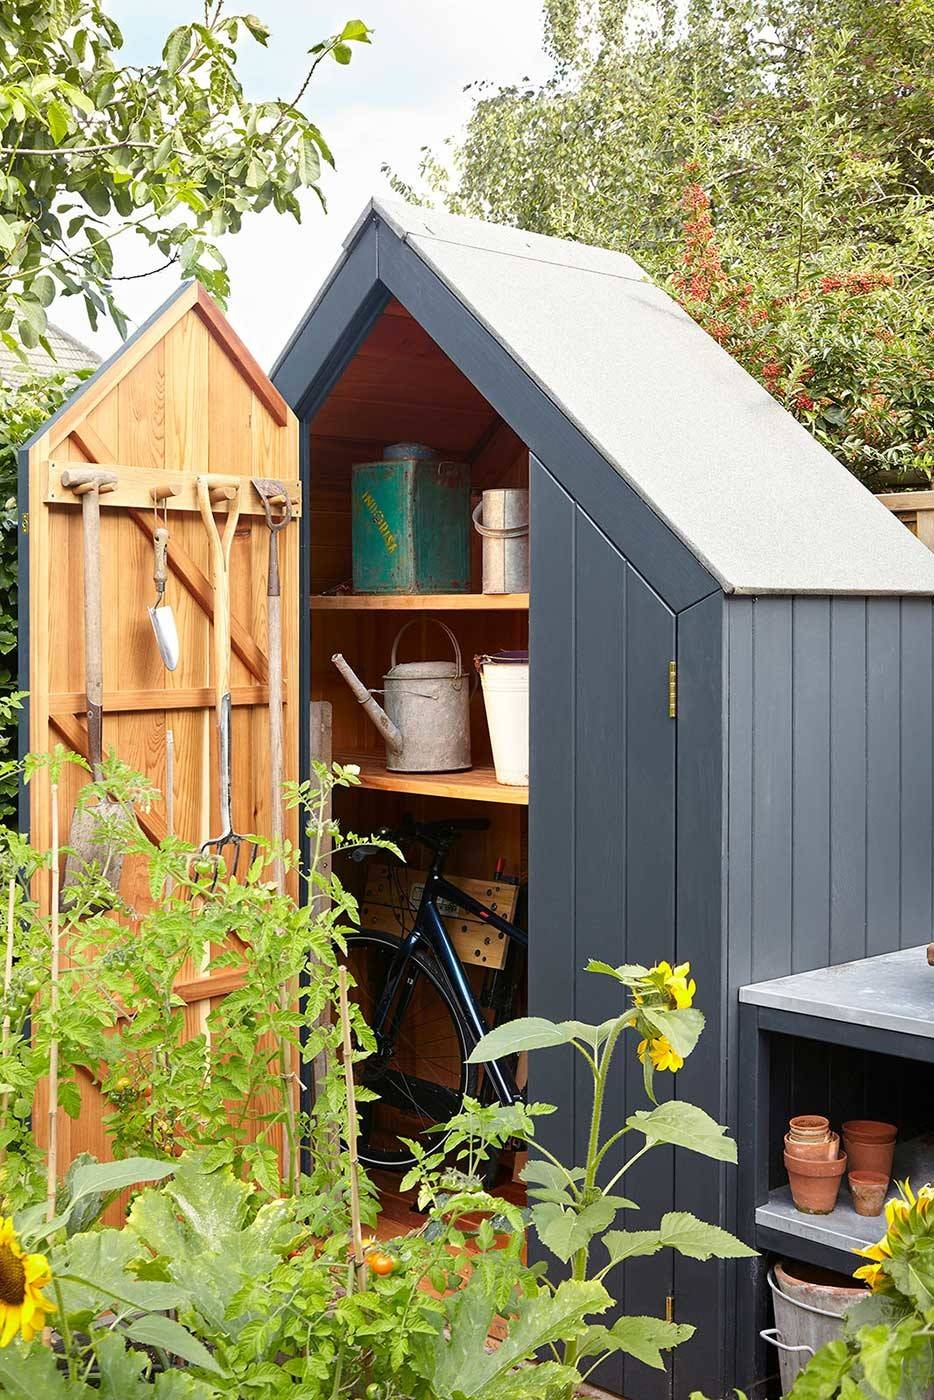 75 Beautiful Garden Shed Pictures Ideas October 2020 Houzz